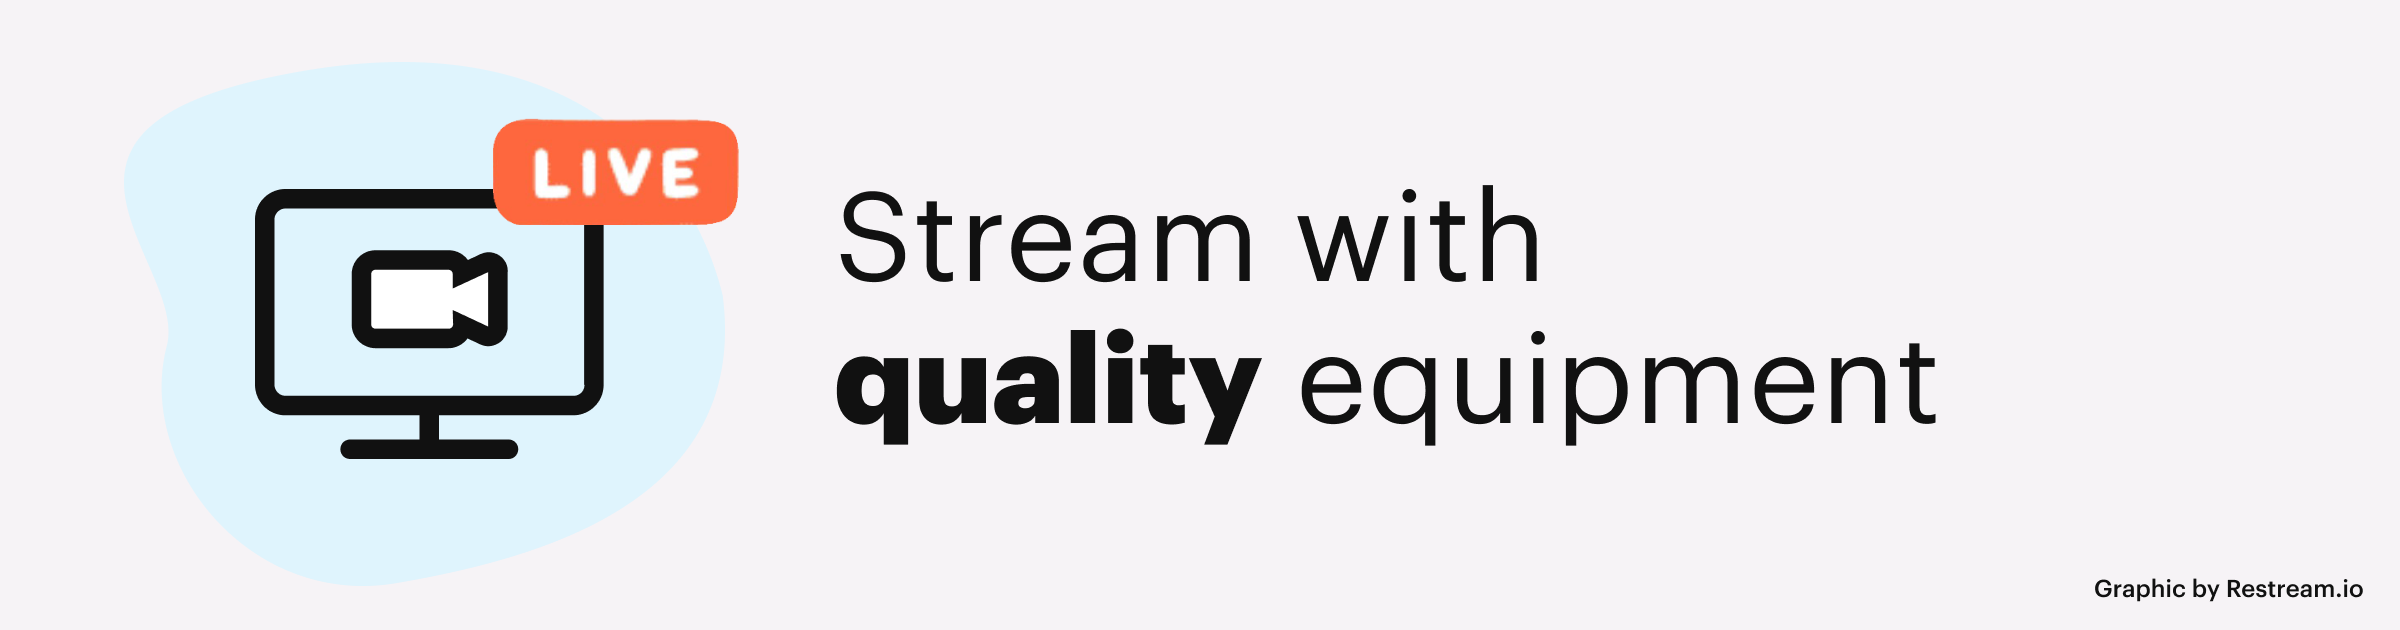 Stream with quality equipment